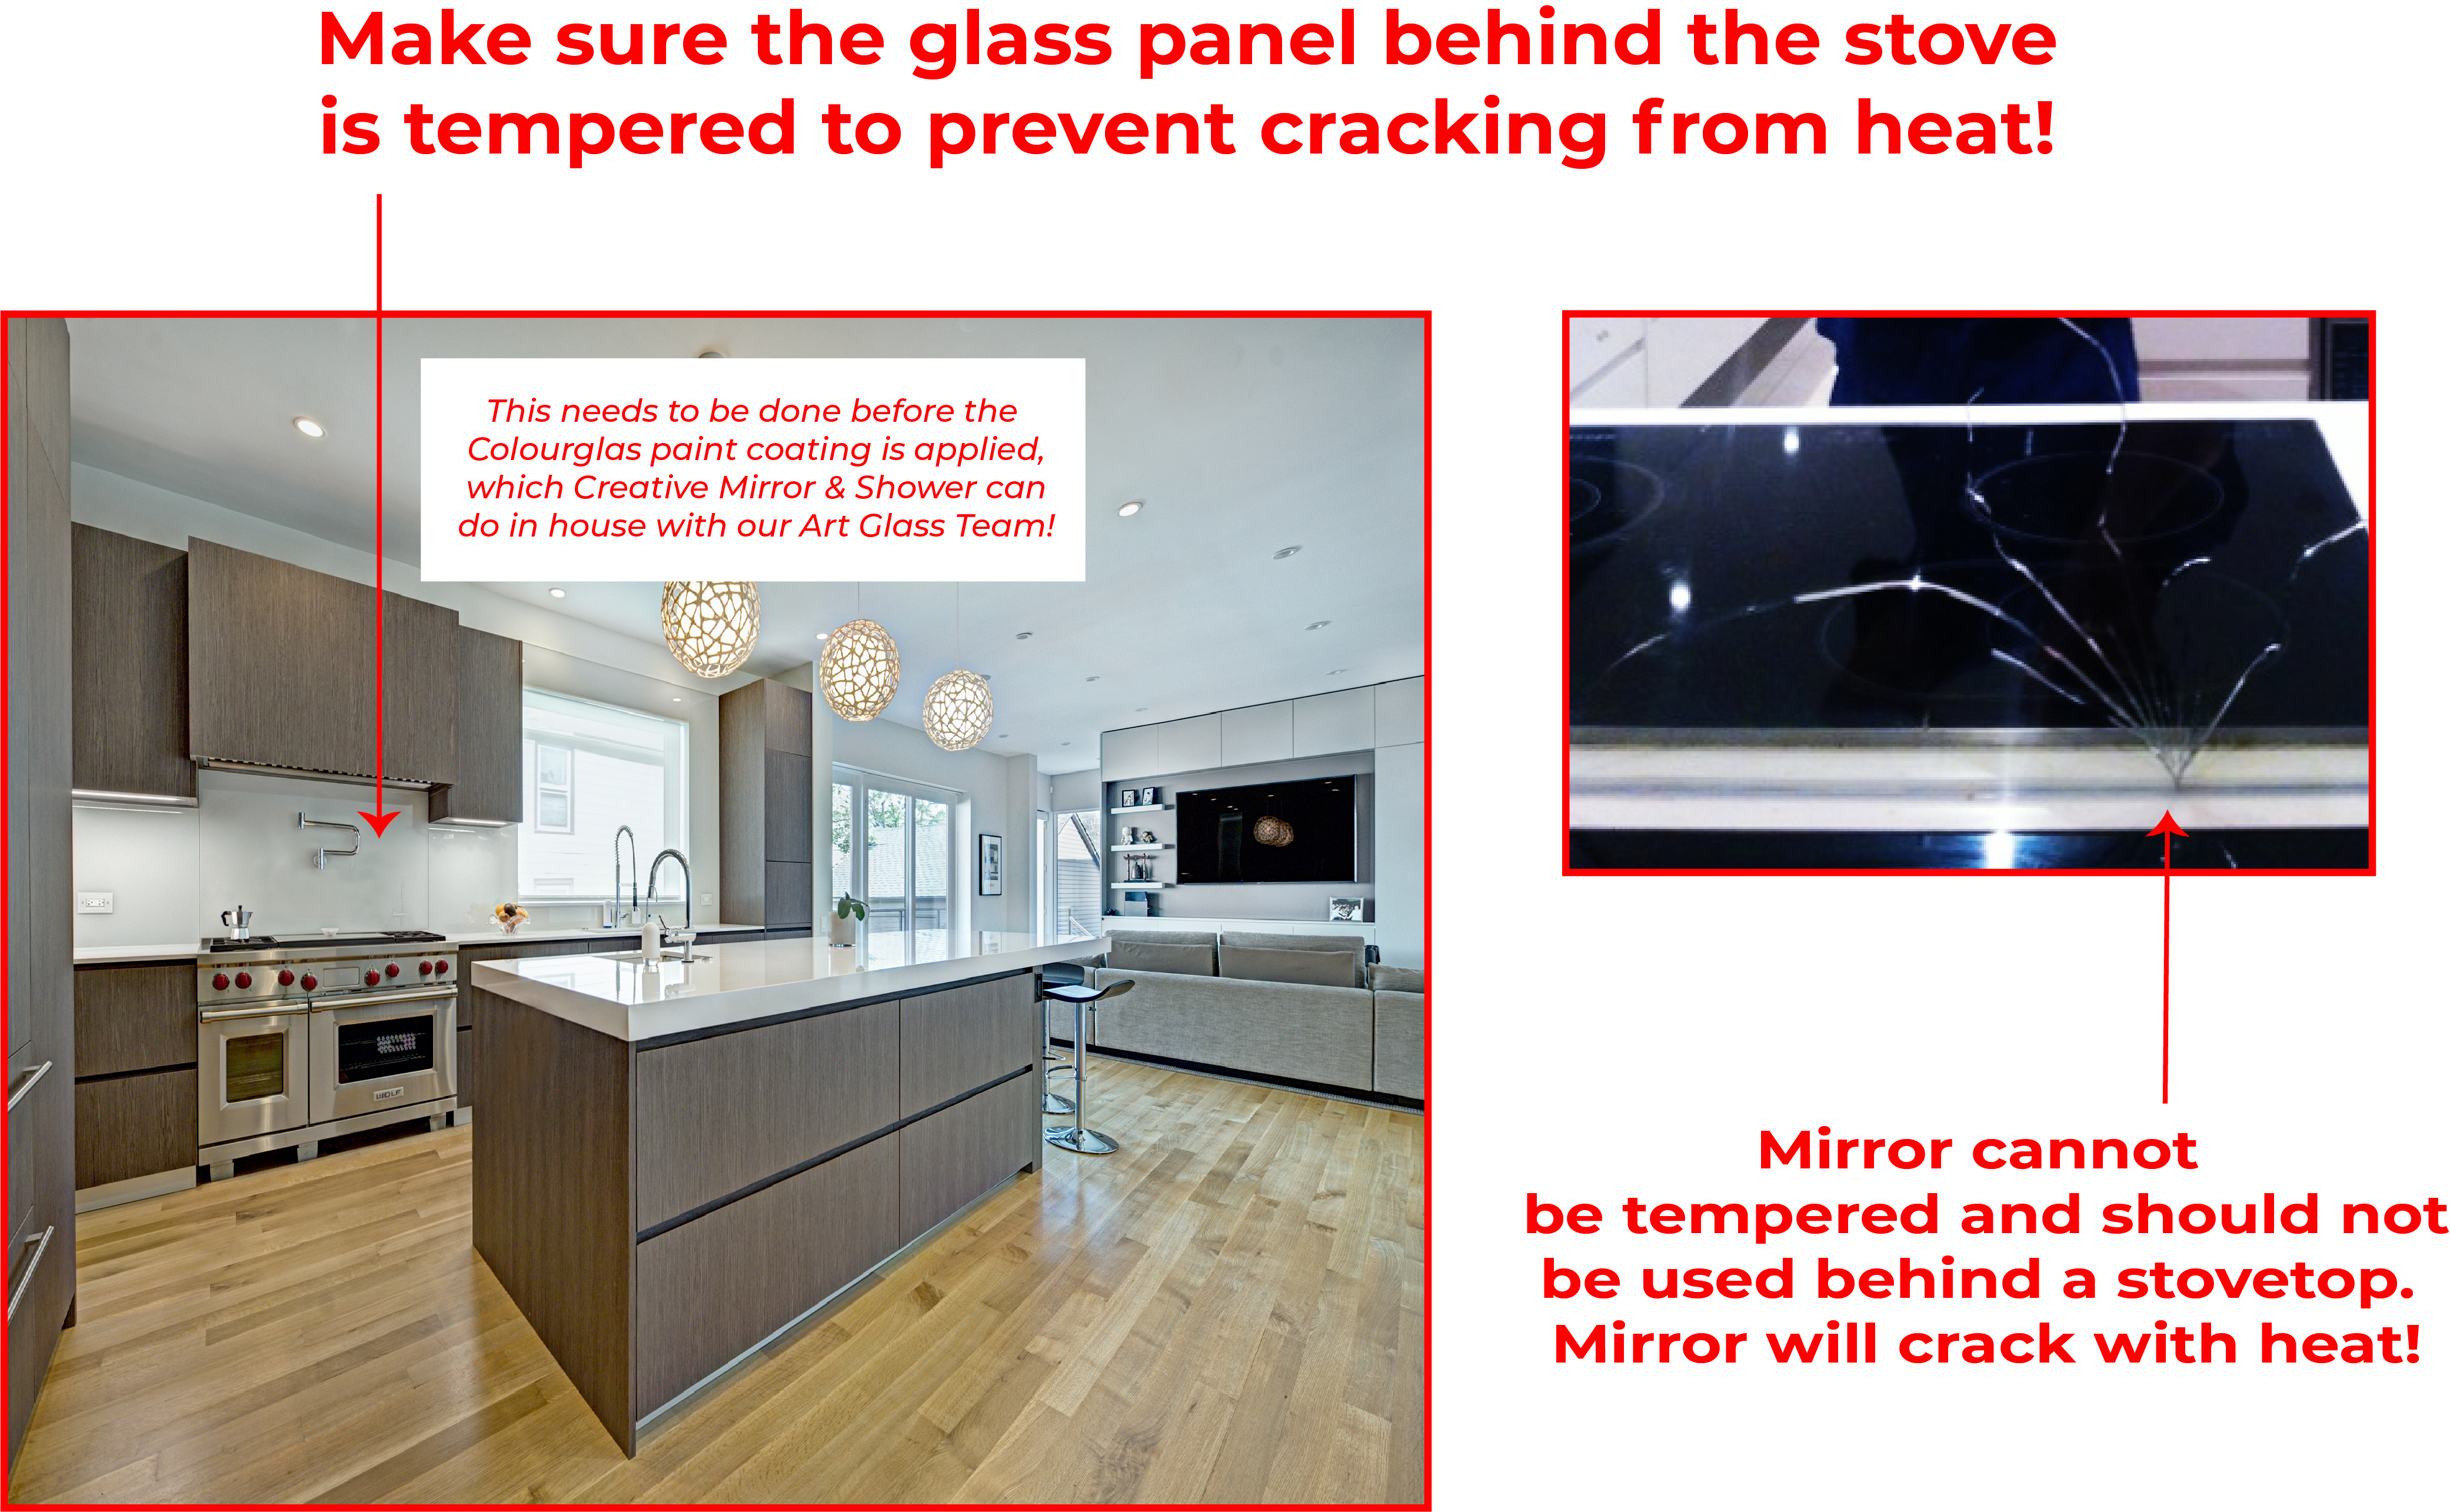 Make Sure Glass Panel Behind Stove Is Tempered To Prevent Cracking From Heat